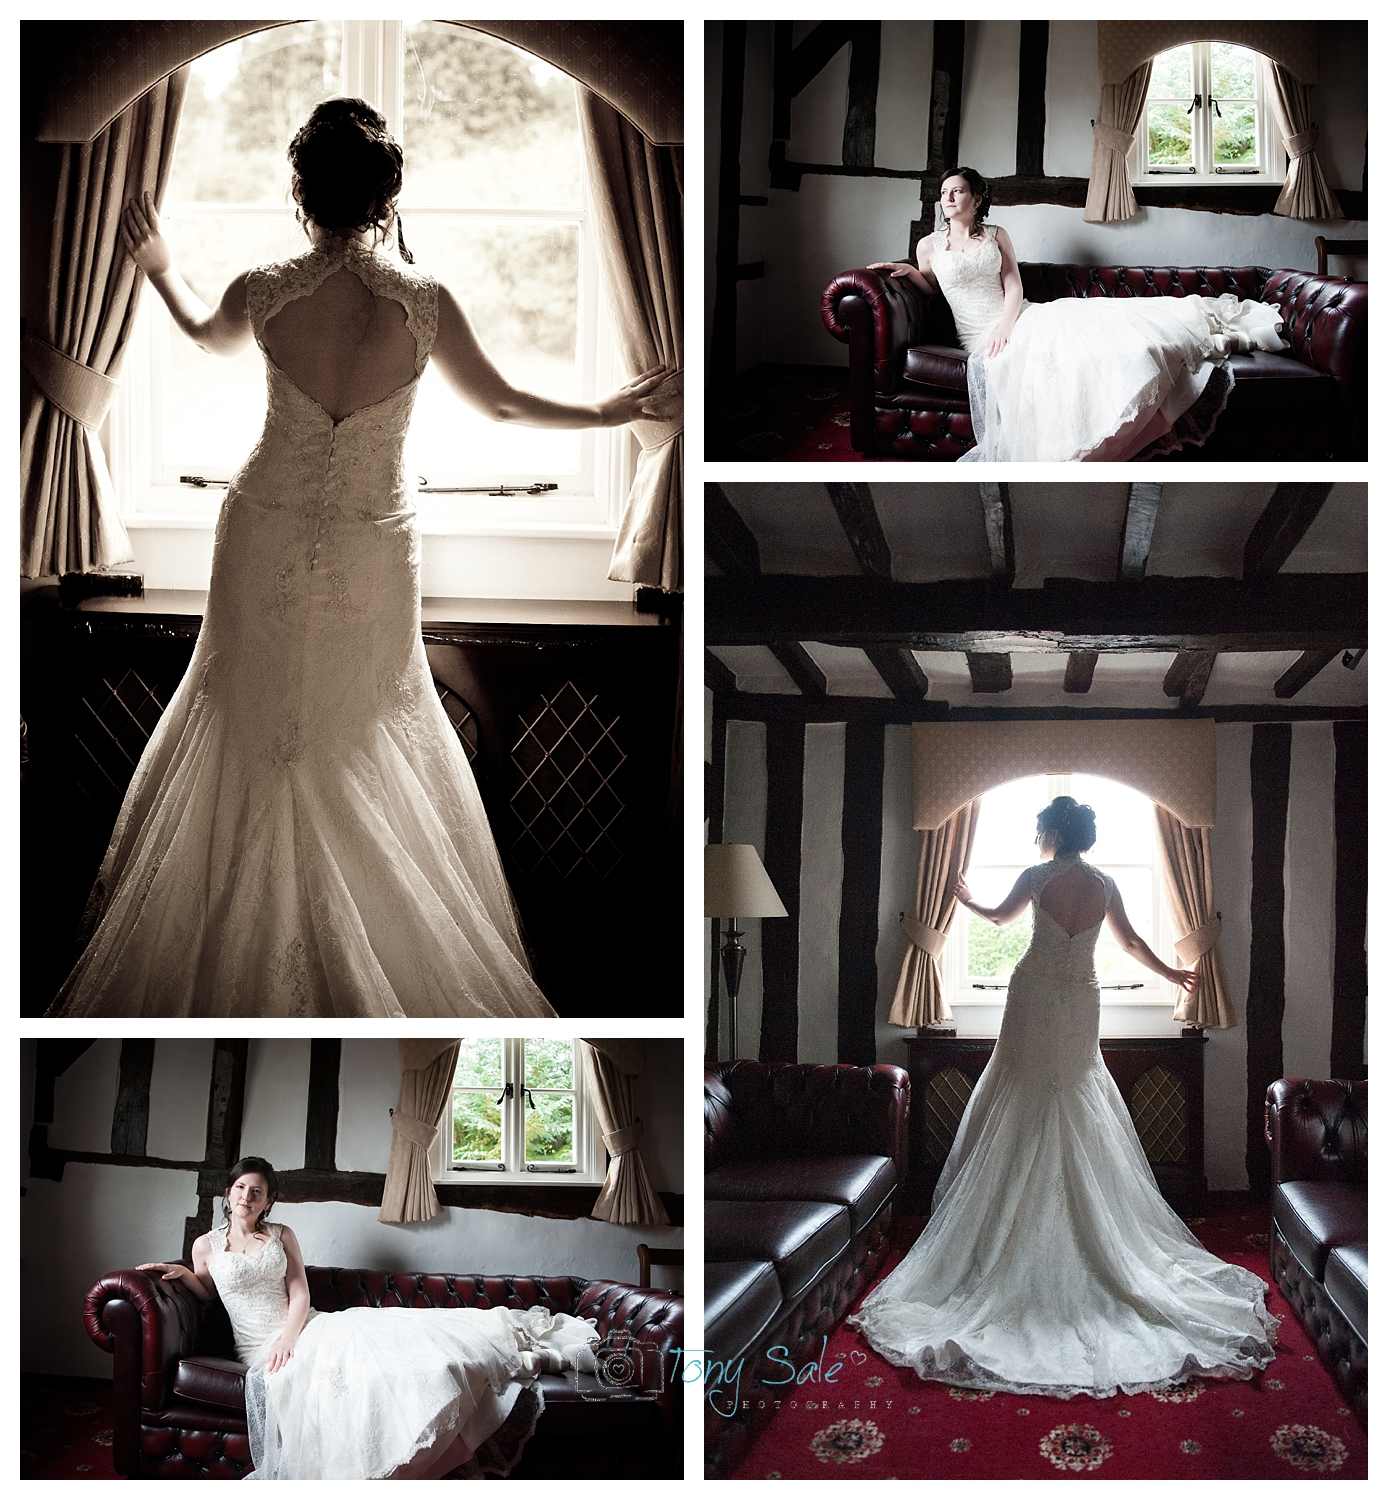 wedding-photography-newland-hall-chelmsford_011